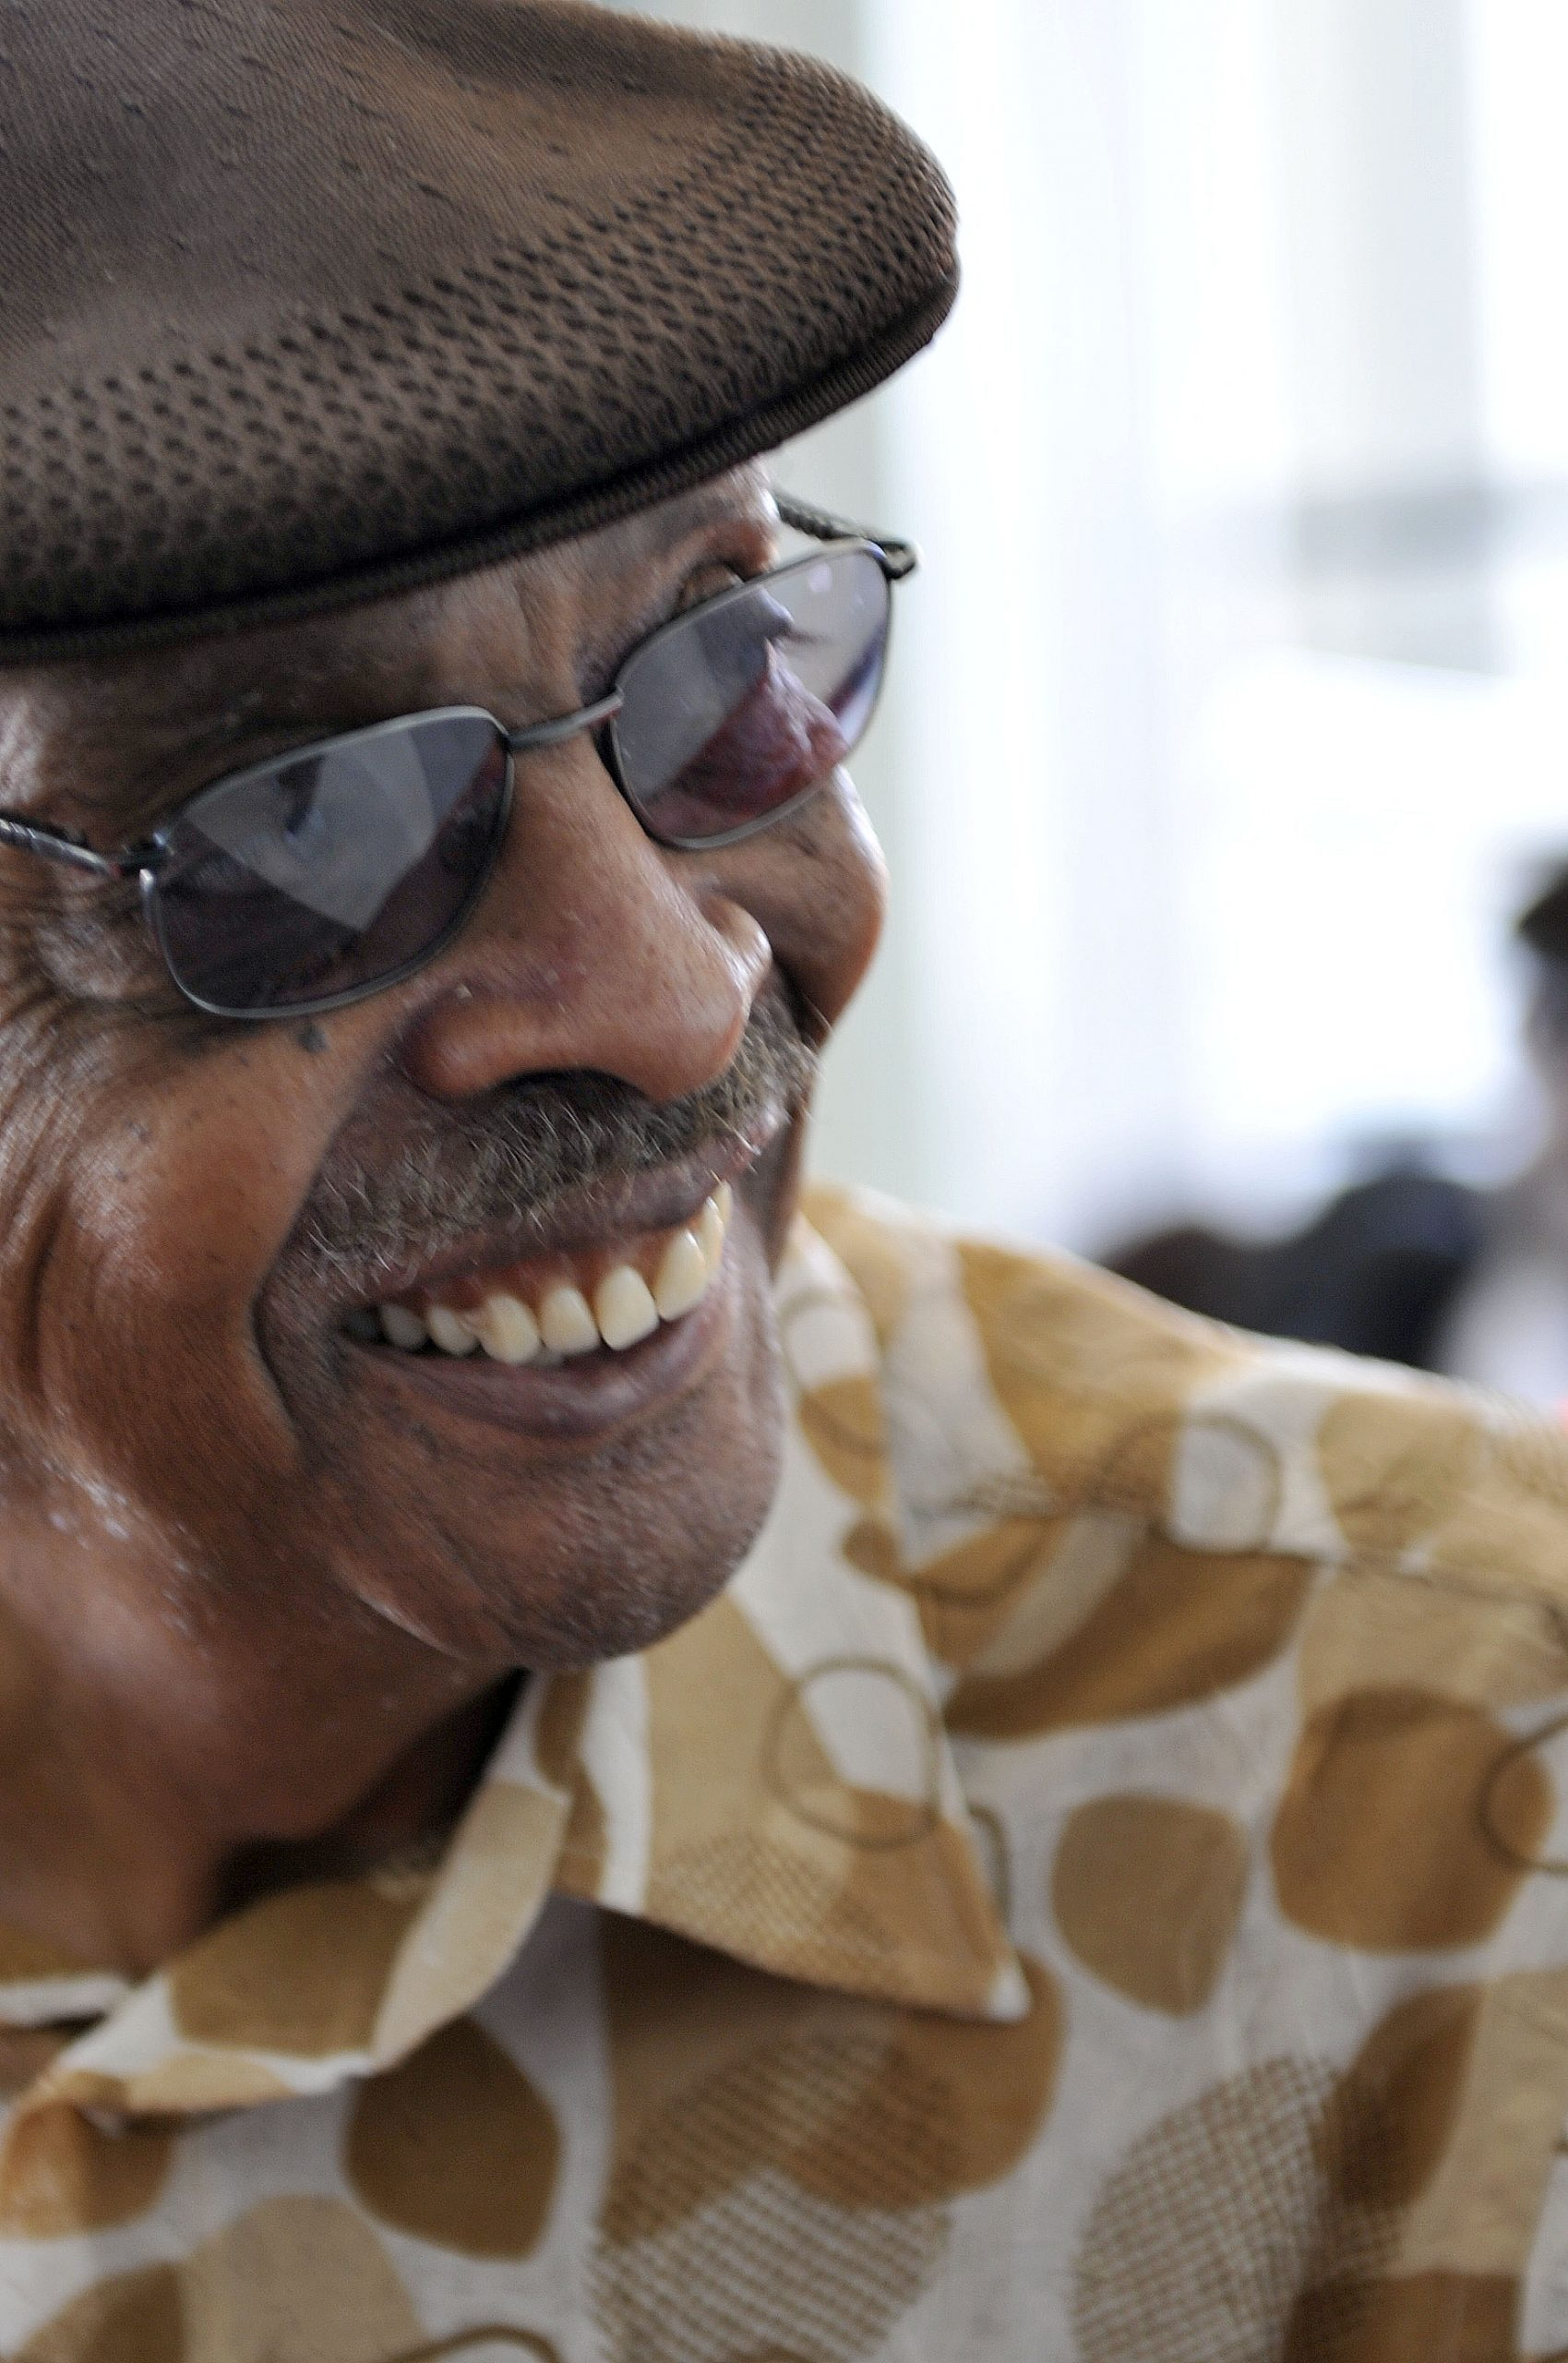 Herb Kent in 2009, outside the Harold Washington Library before the broadcast of Michael Jackson's memorial